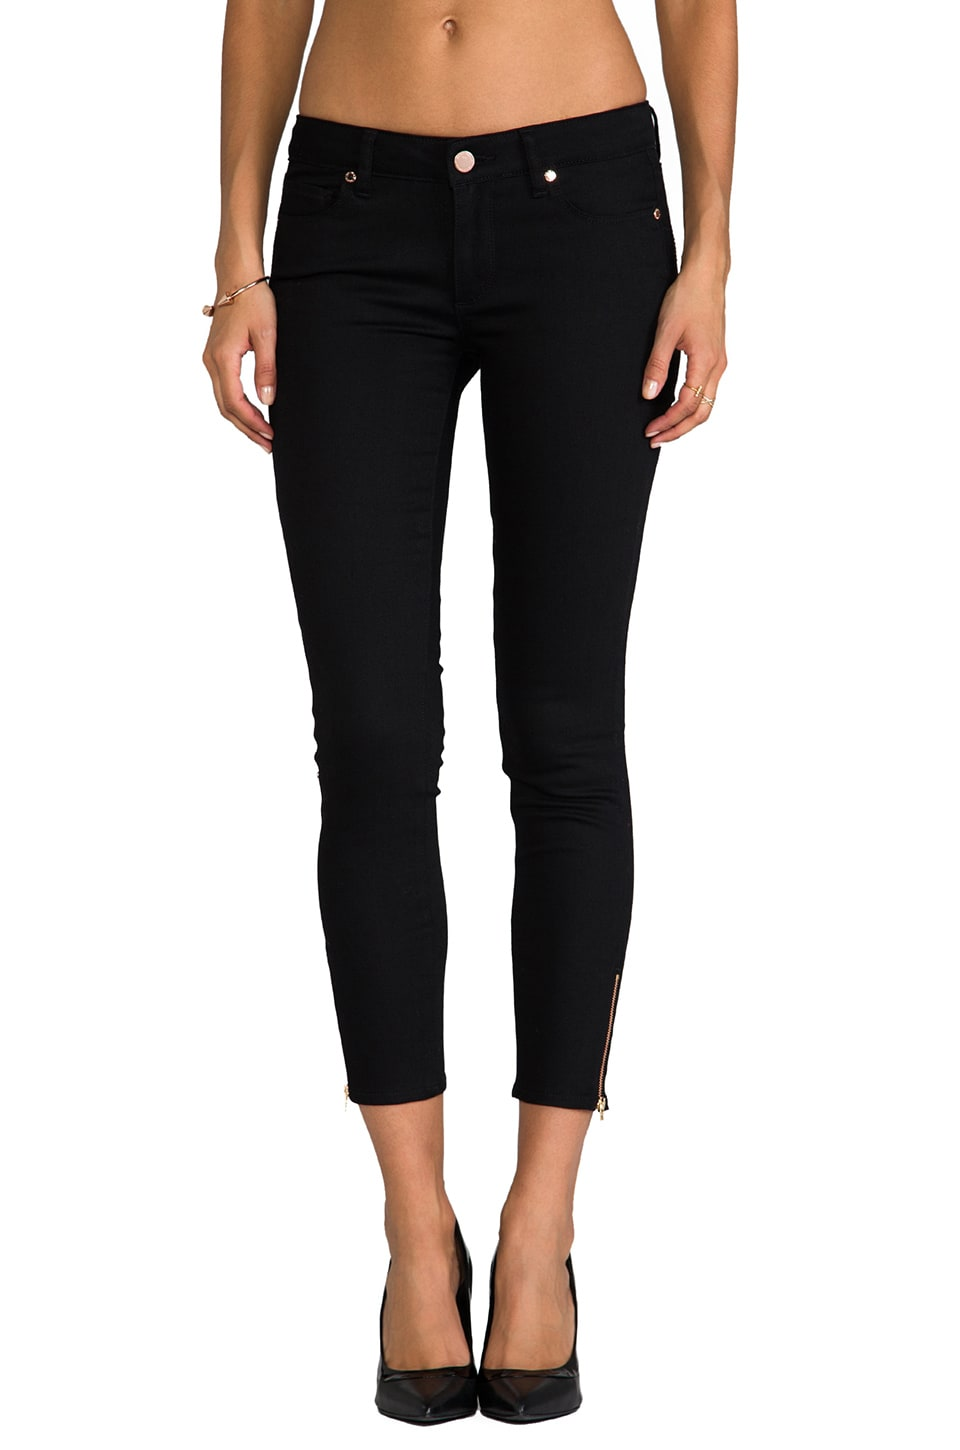 Paige Denim x REVOLVE Verdugo Ankle Zip in Steel Grey